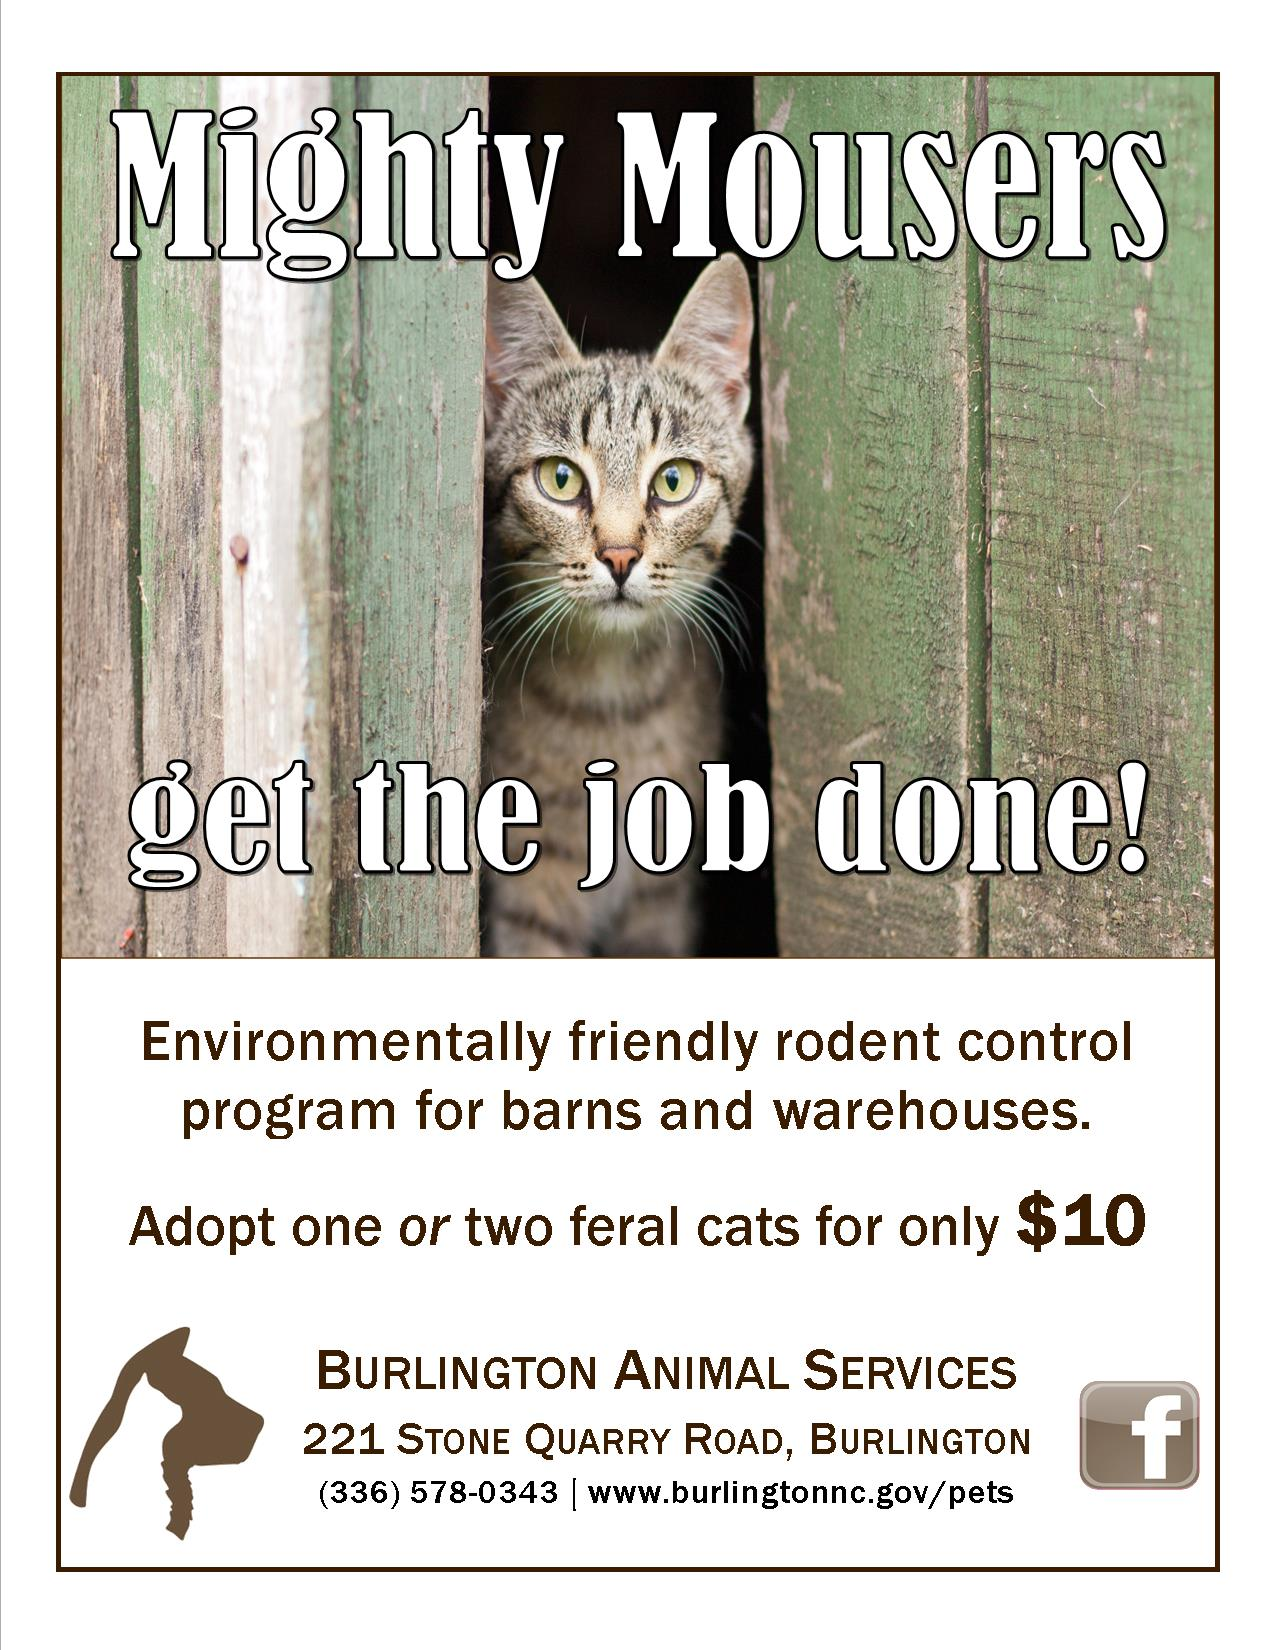 Mighty Mouser Flier 2018 ver. 2